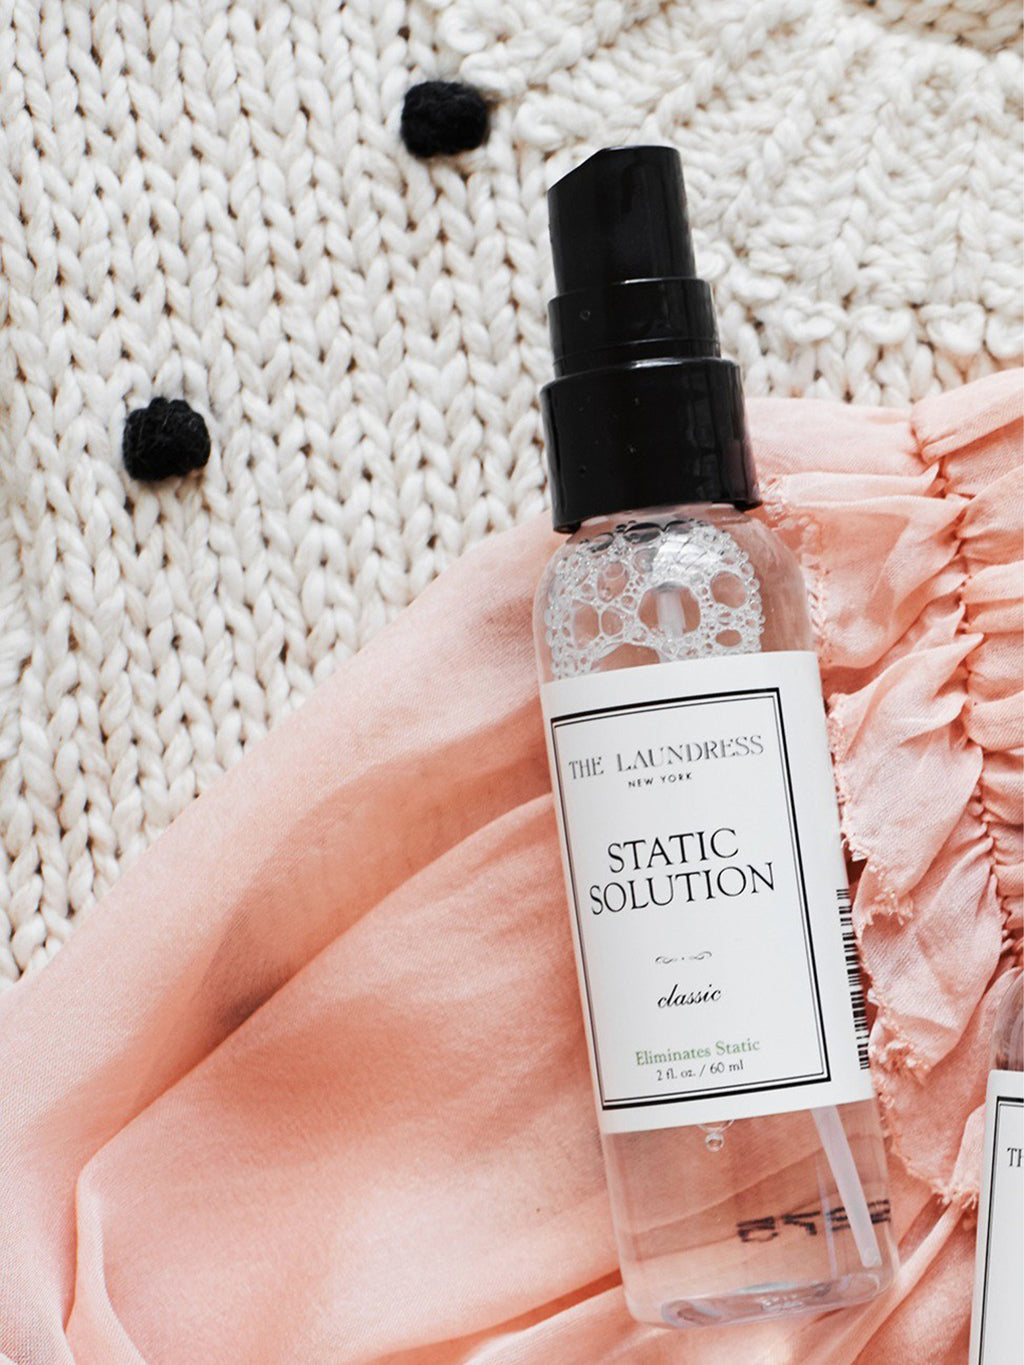 The Laundress Static Solution Spray - Classic 2 fl oz